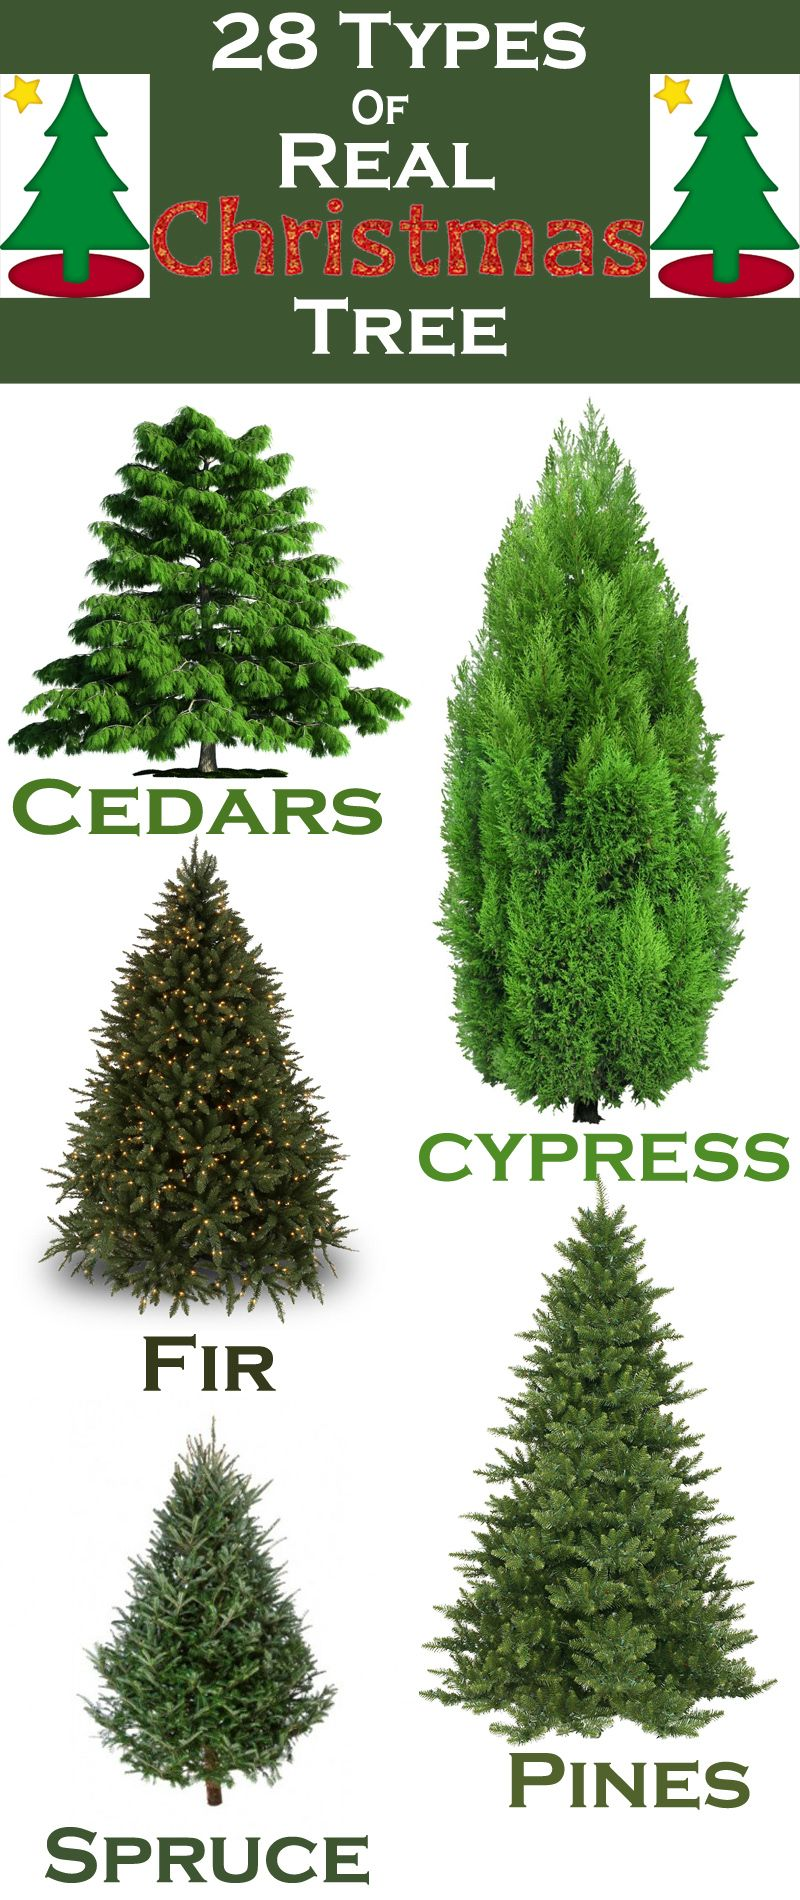 28 types of real christmas trees around the world - How Long Do Real Christmas Trees Last